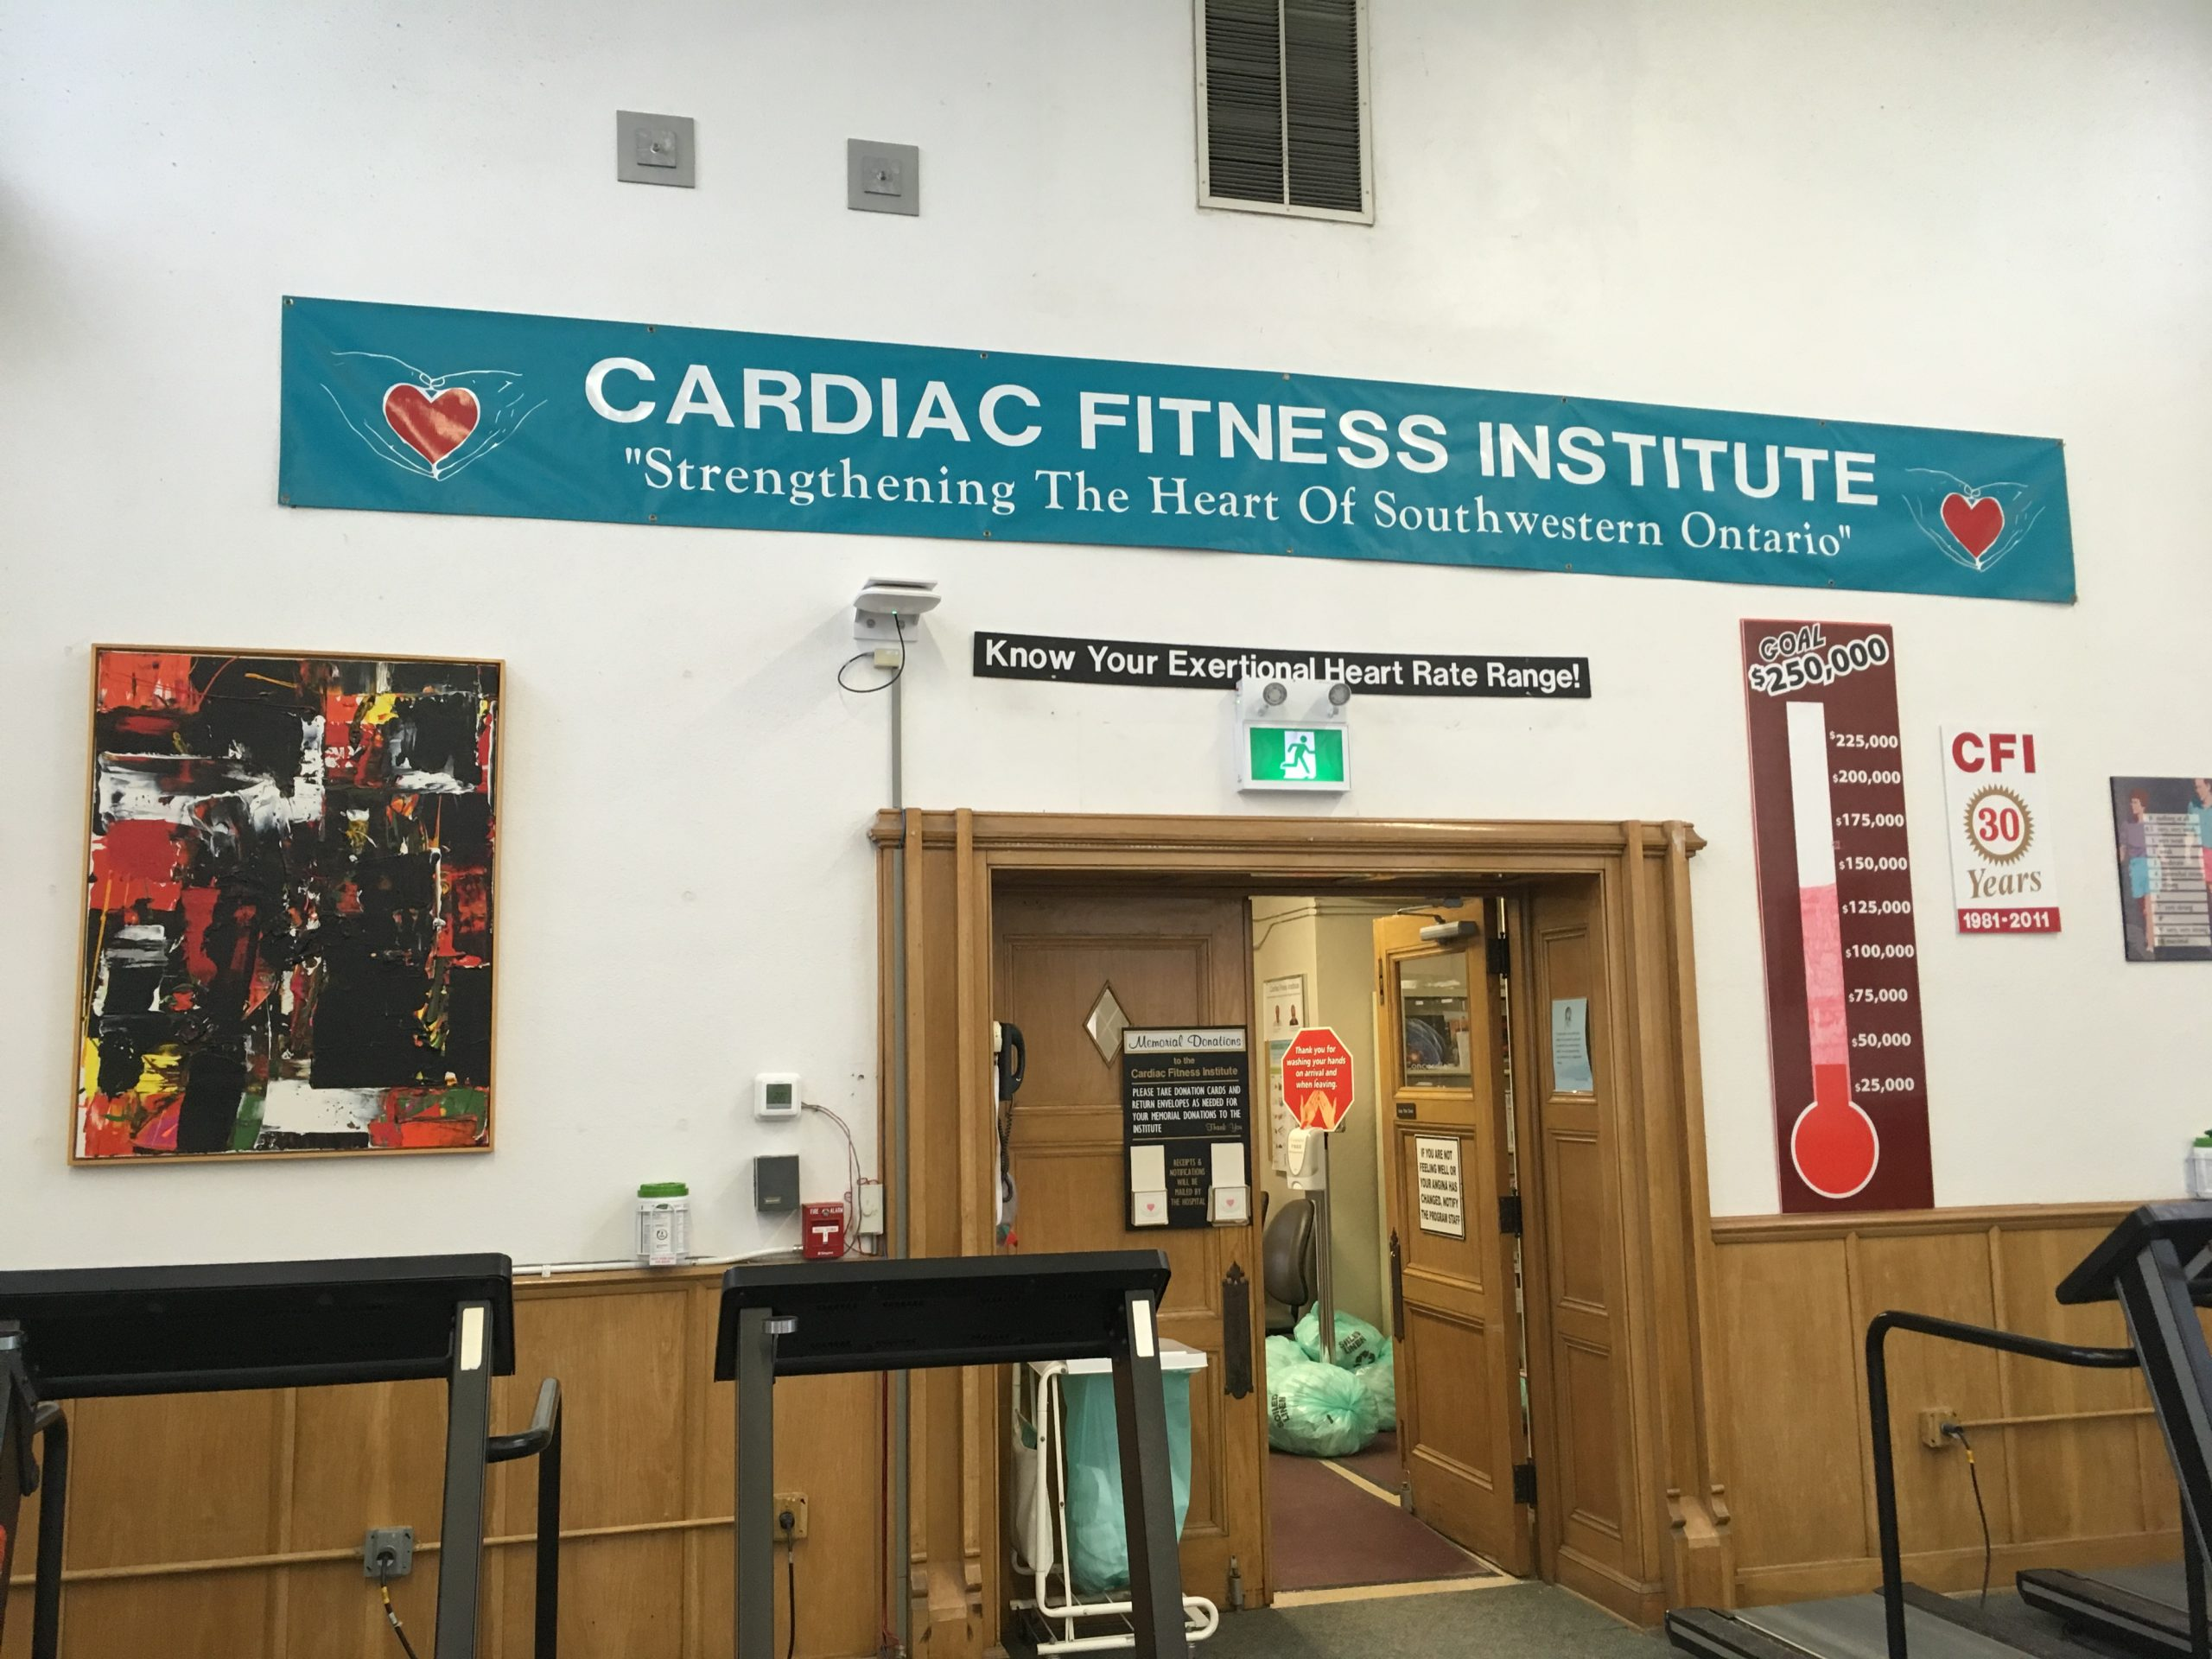 Is it too late to save the Cardiac Fitness Institute?